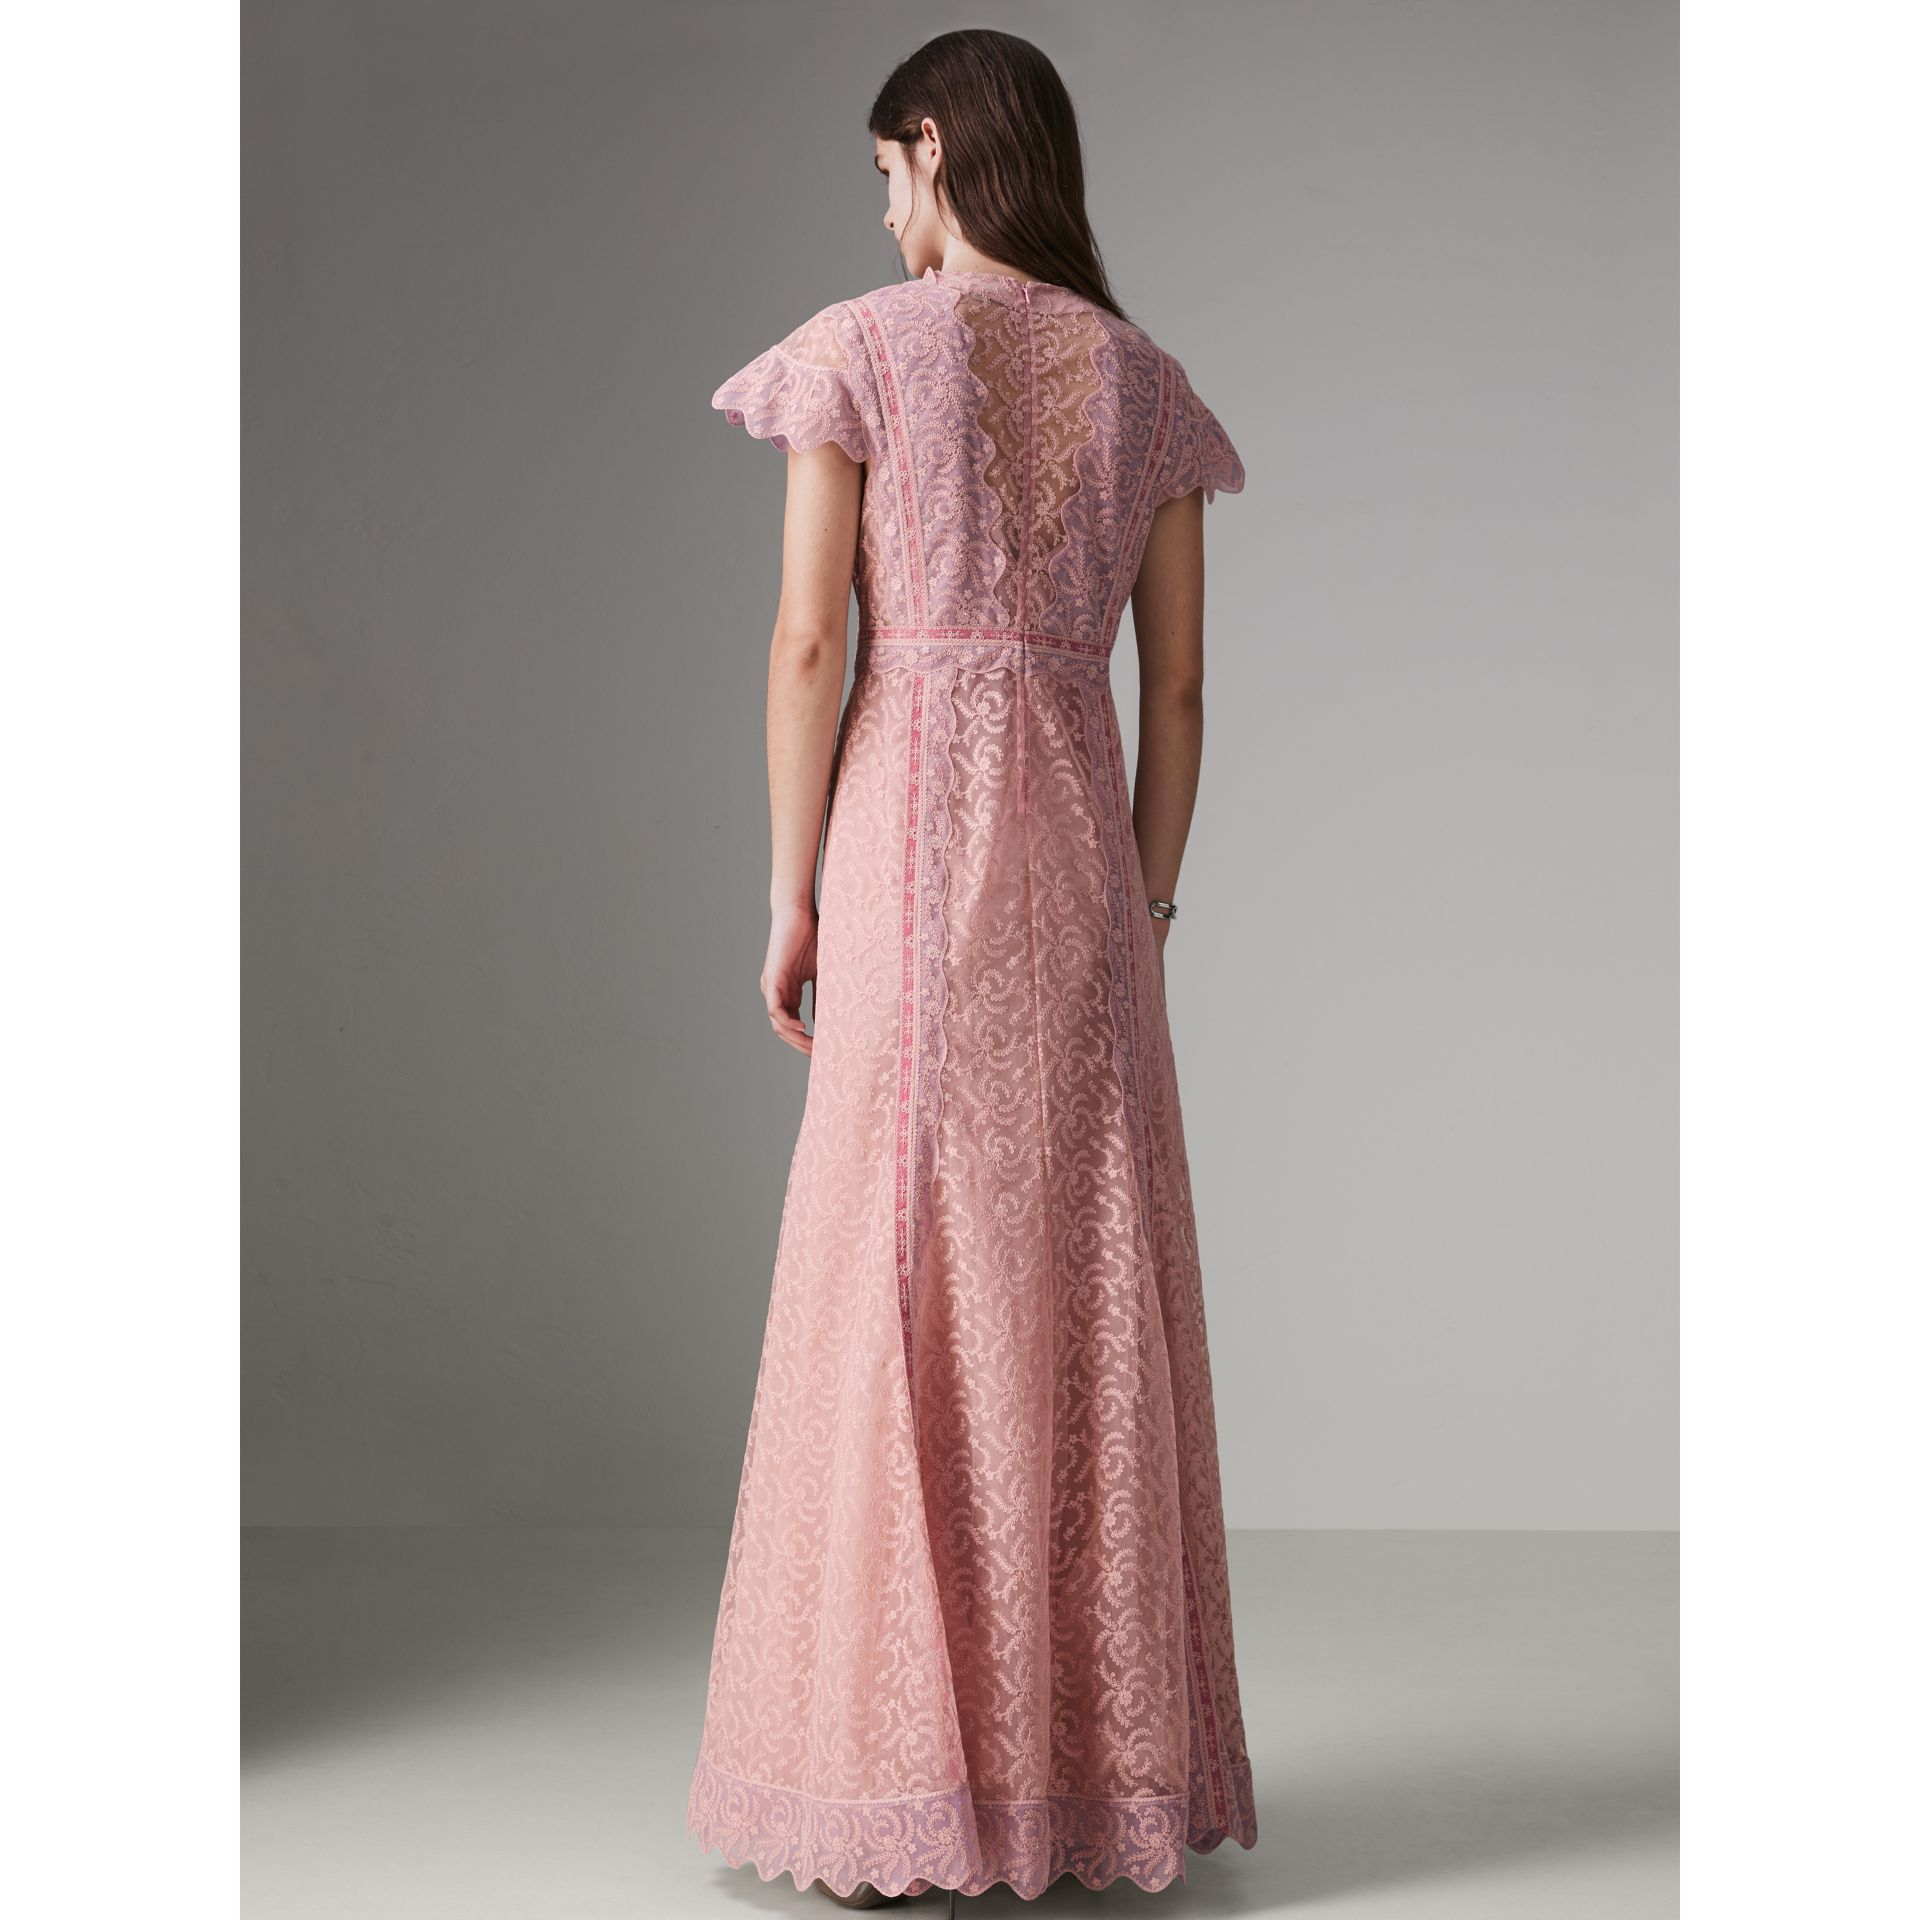 Embroidered Floral Lace and Tulle Dress in Pale Pink - Women | Burberry - gallery image 2